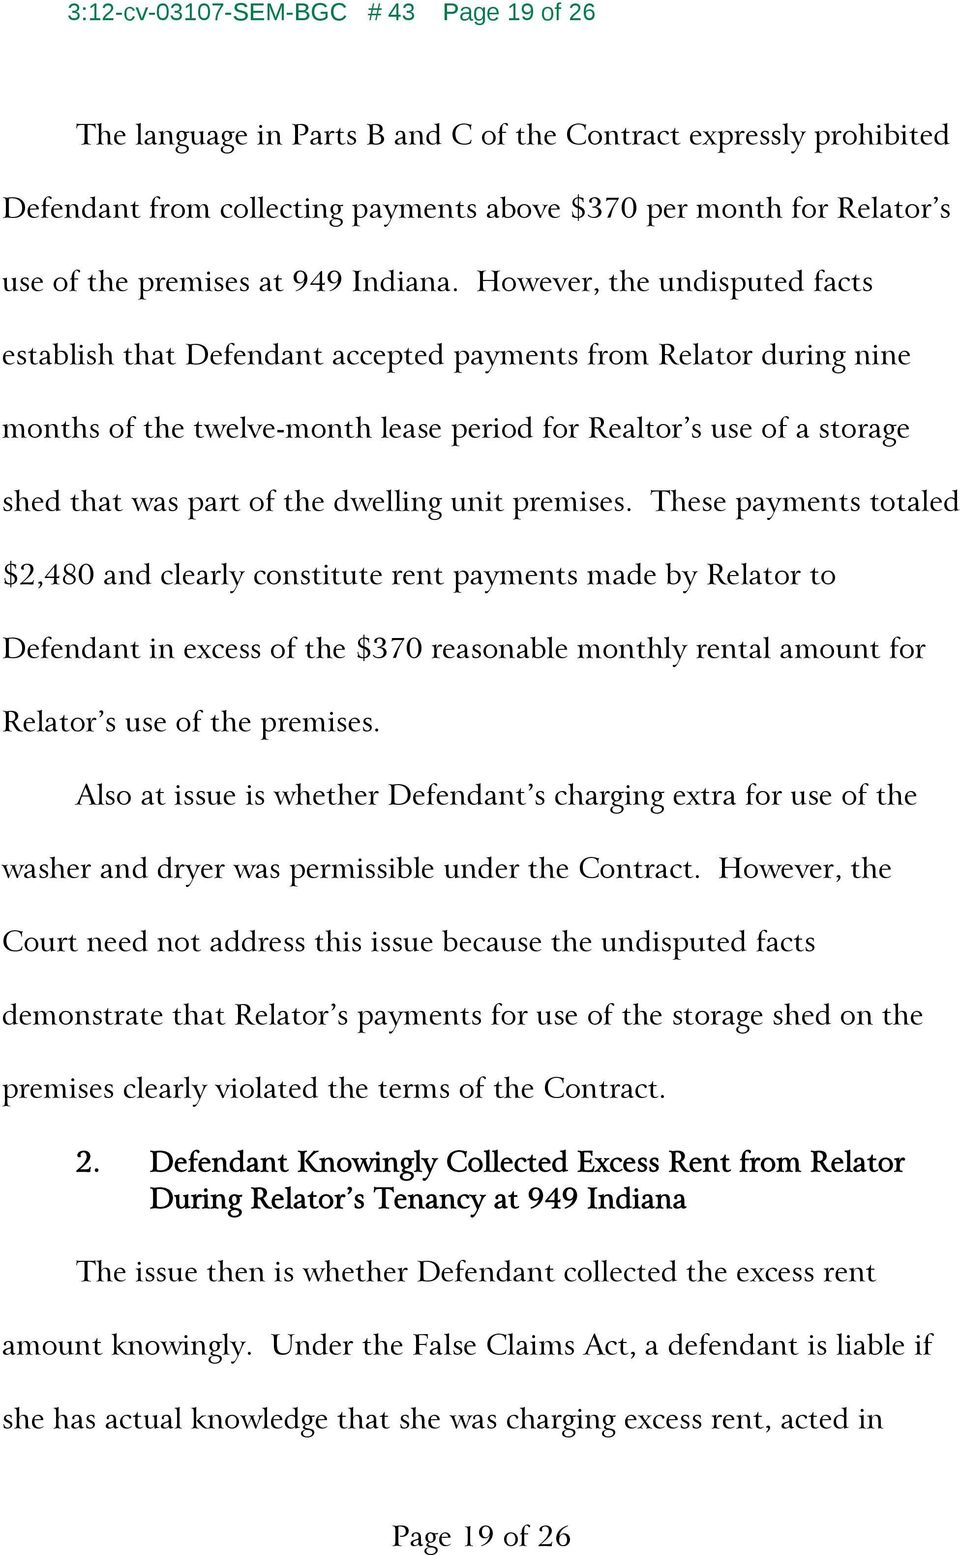 However, the undisputed facts establish that Defendant accepted payments from Relator during nine months of the twelve-month lease period for Realtor s use of a storage shed that was part of the